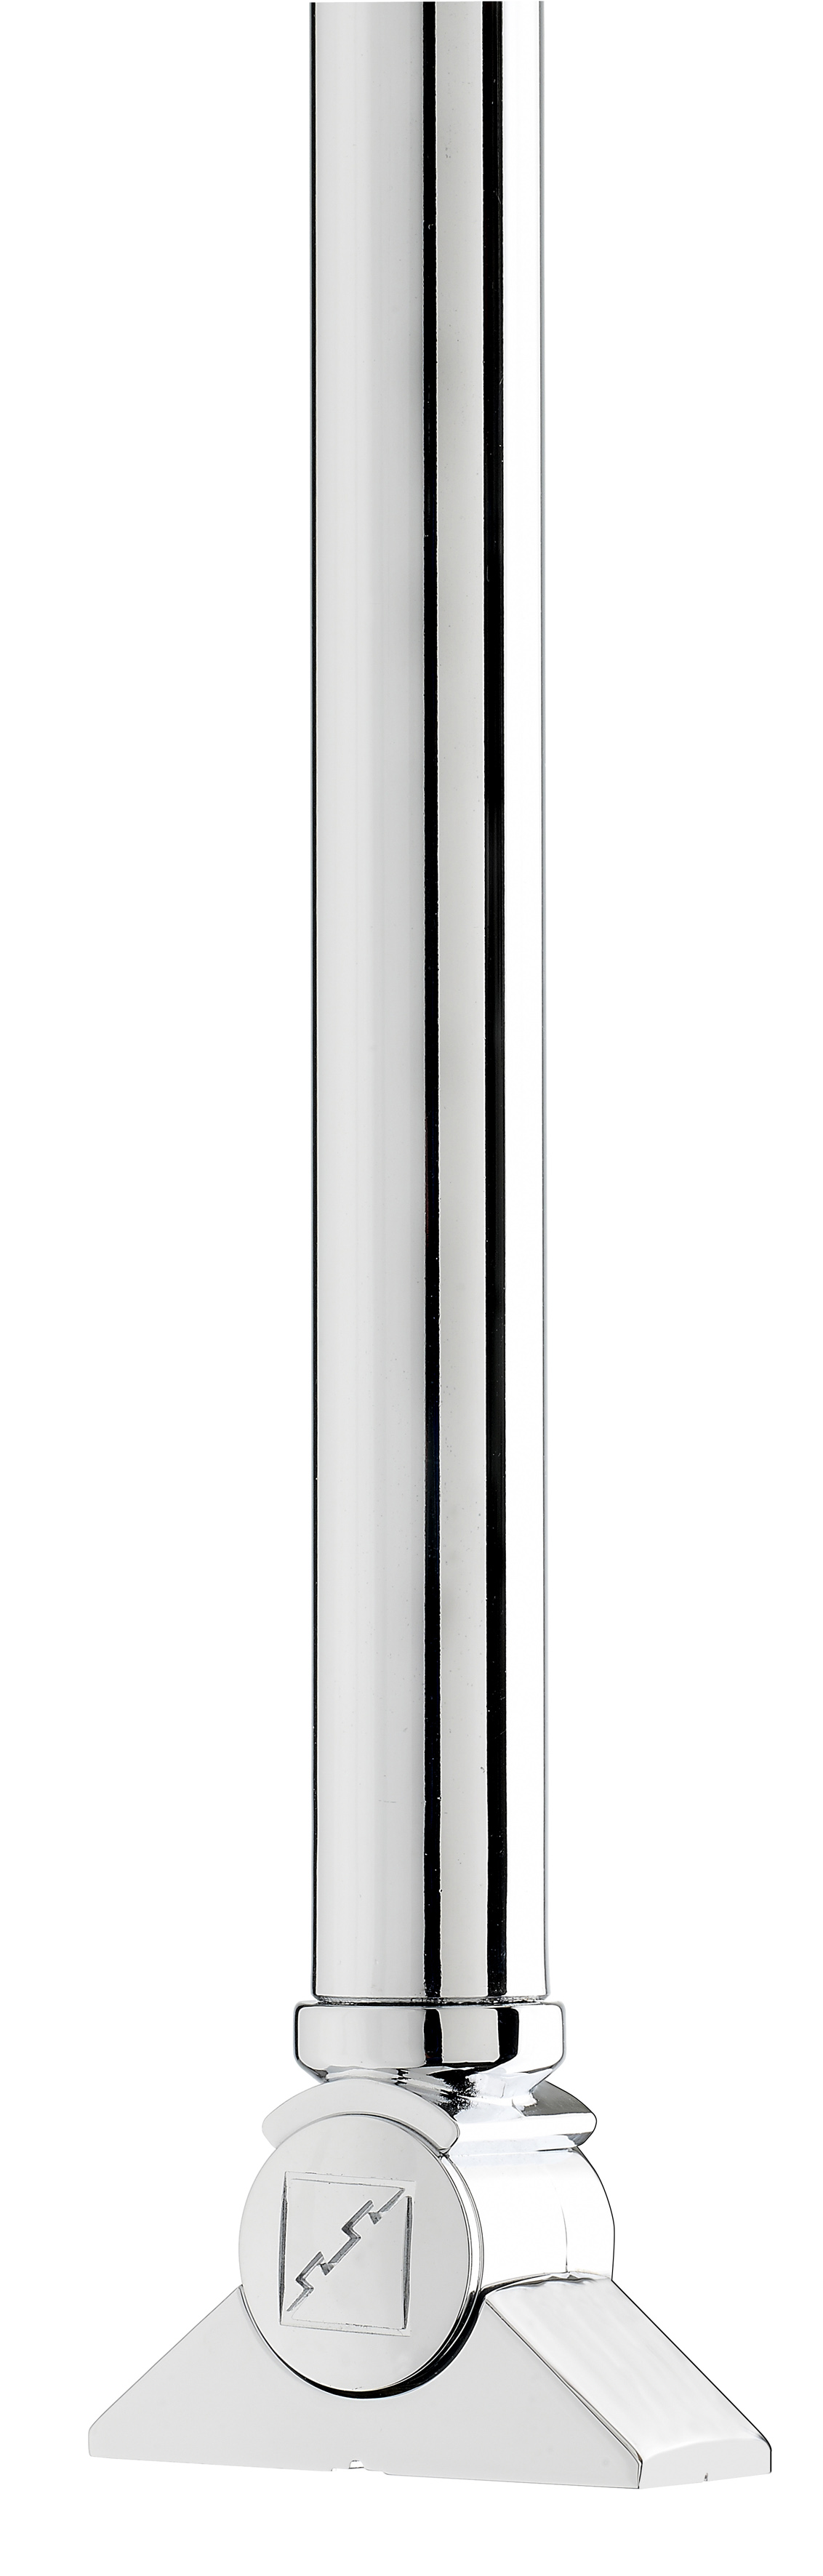 10 Fusion Mk2 Landing Baluster Chrome Finish 760